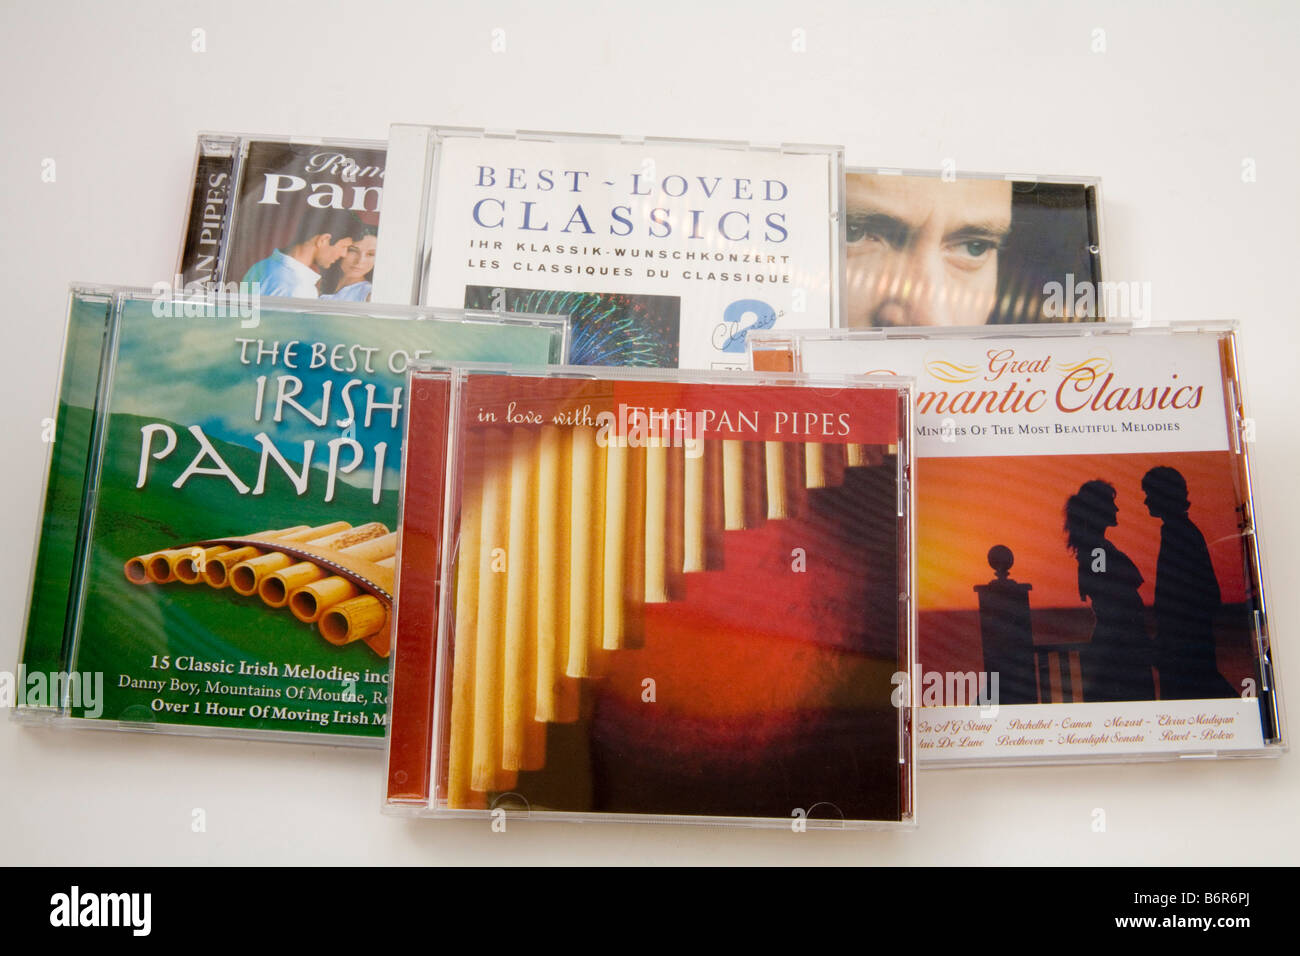 Still Life Close Up A selection of music CD' s - Stock Image